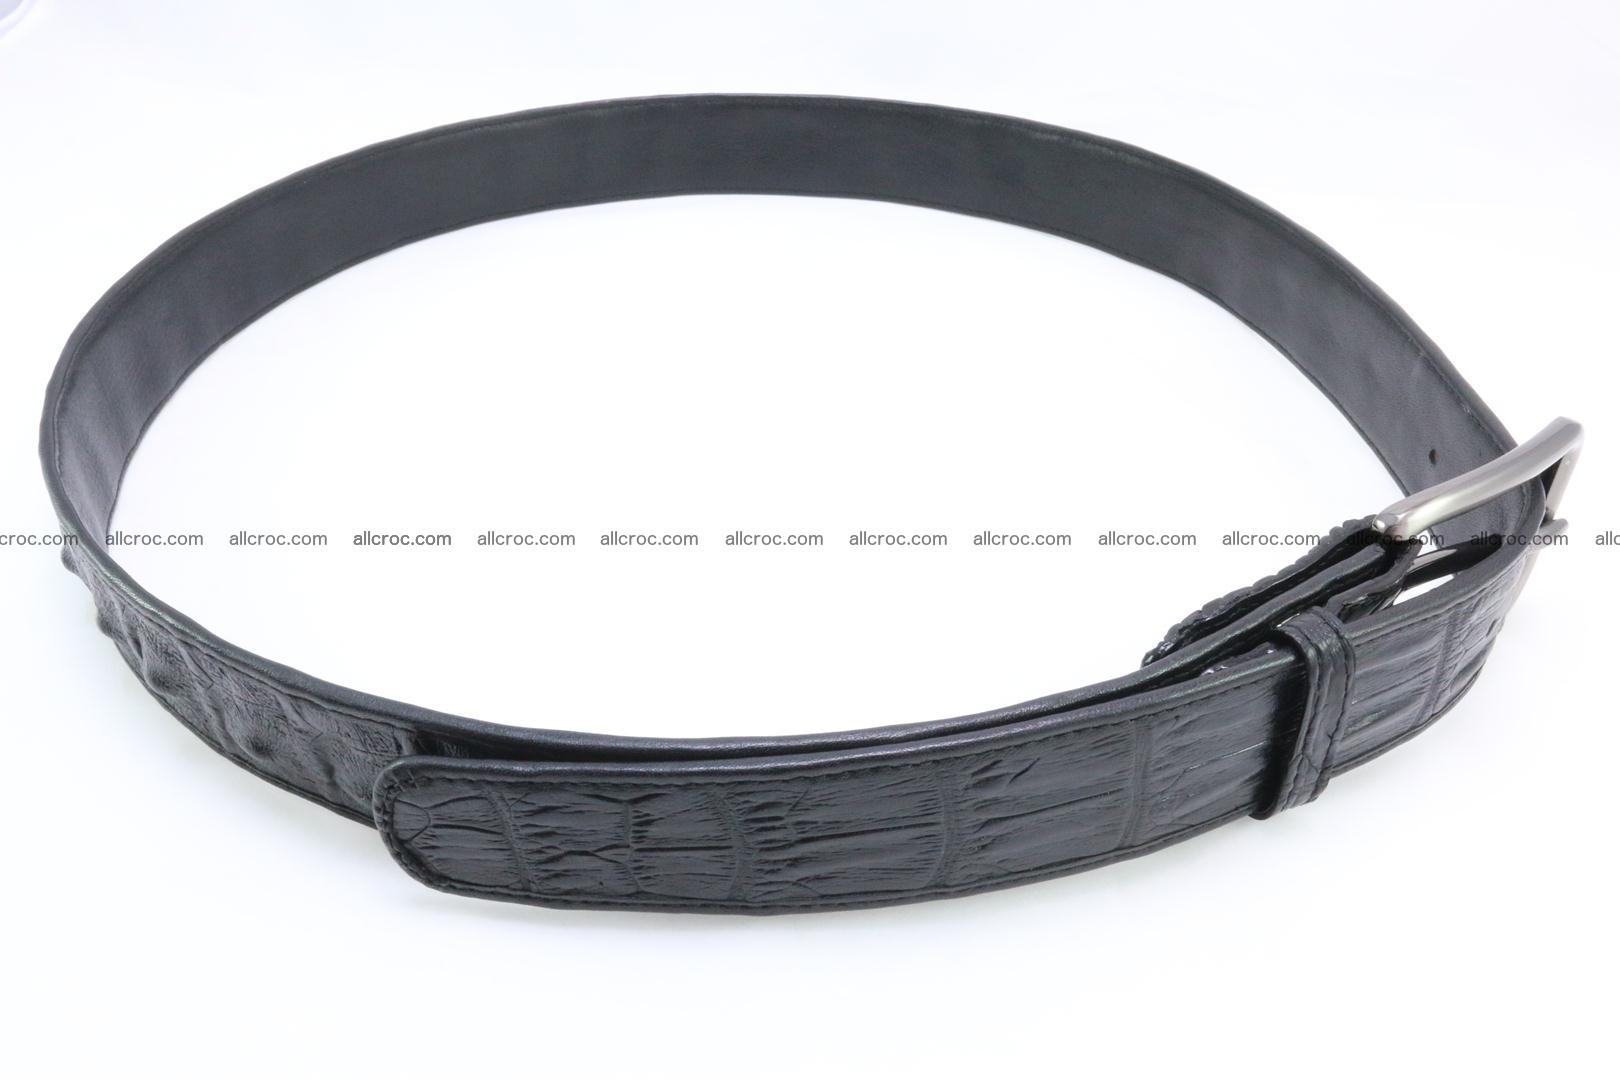 Genuine crocodile leather hornback belt 073 Foto 4